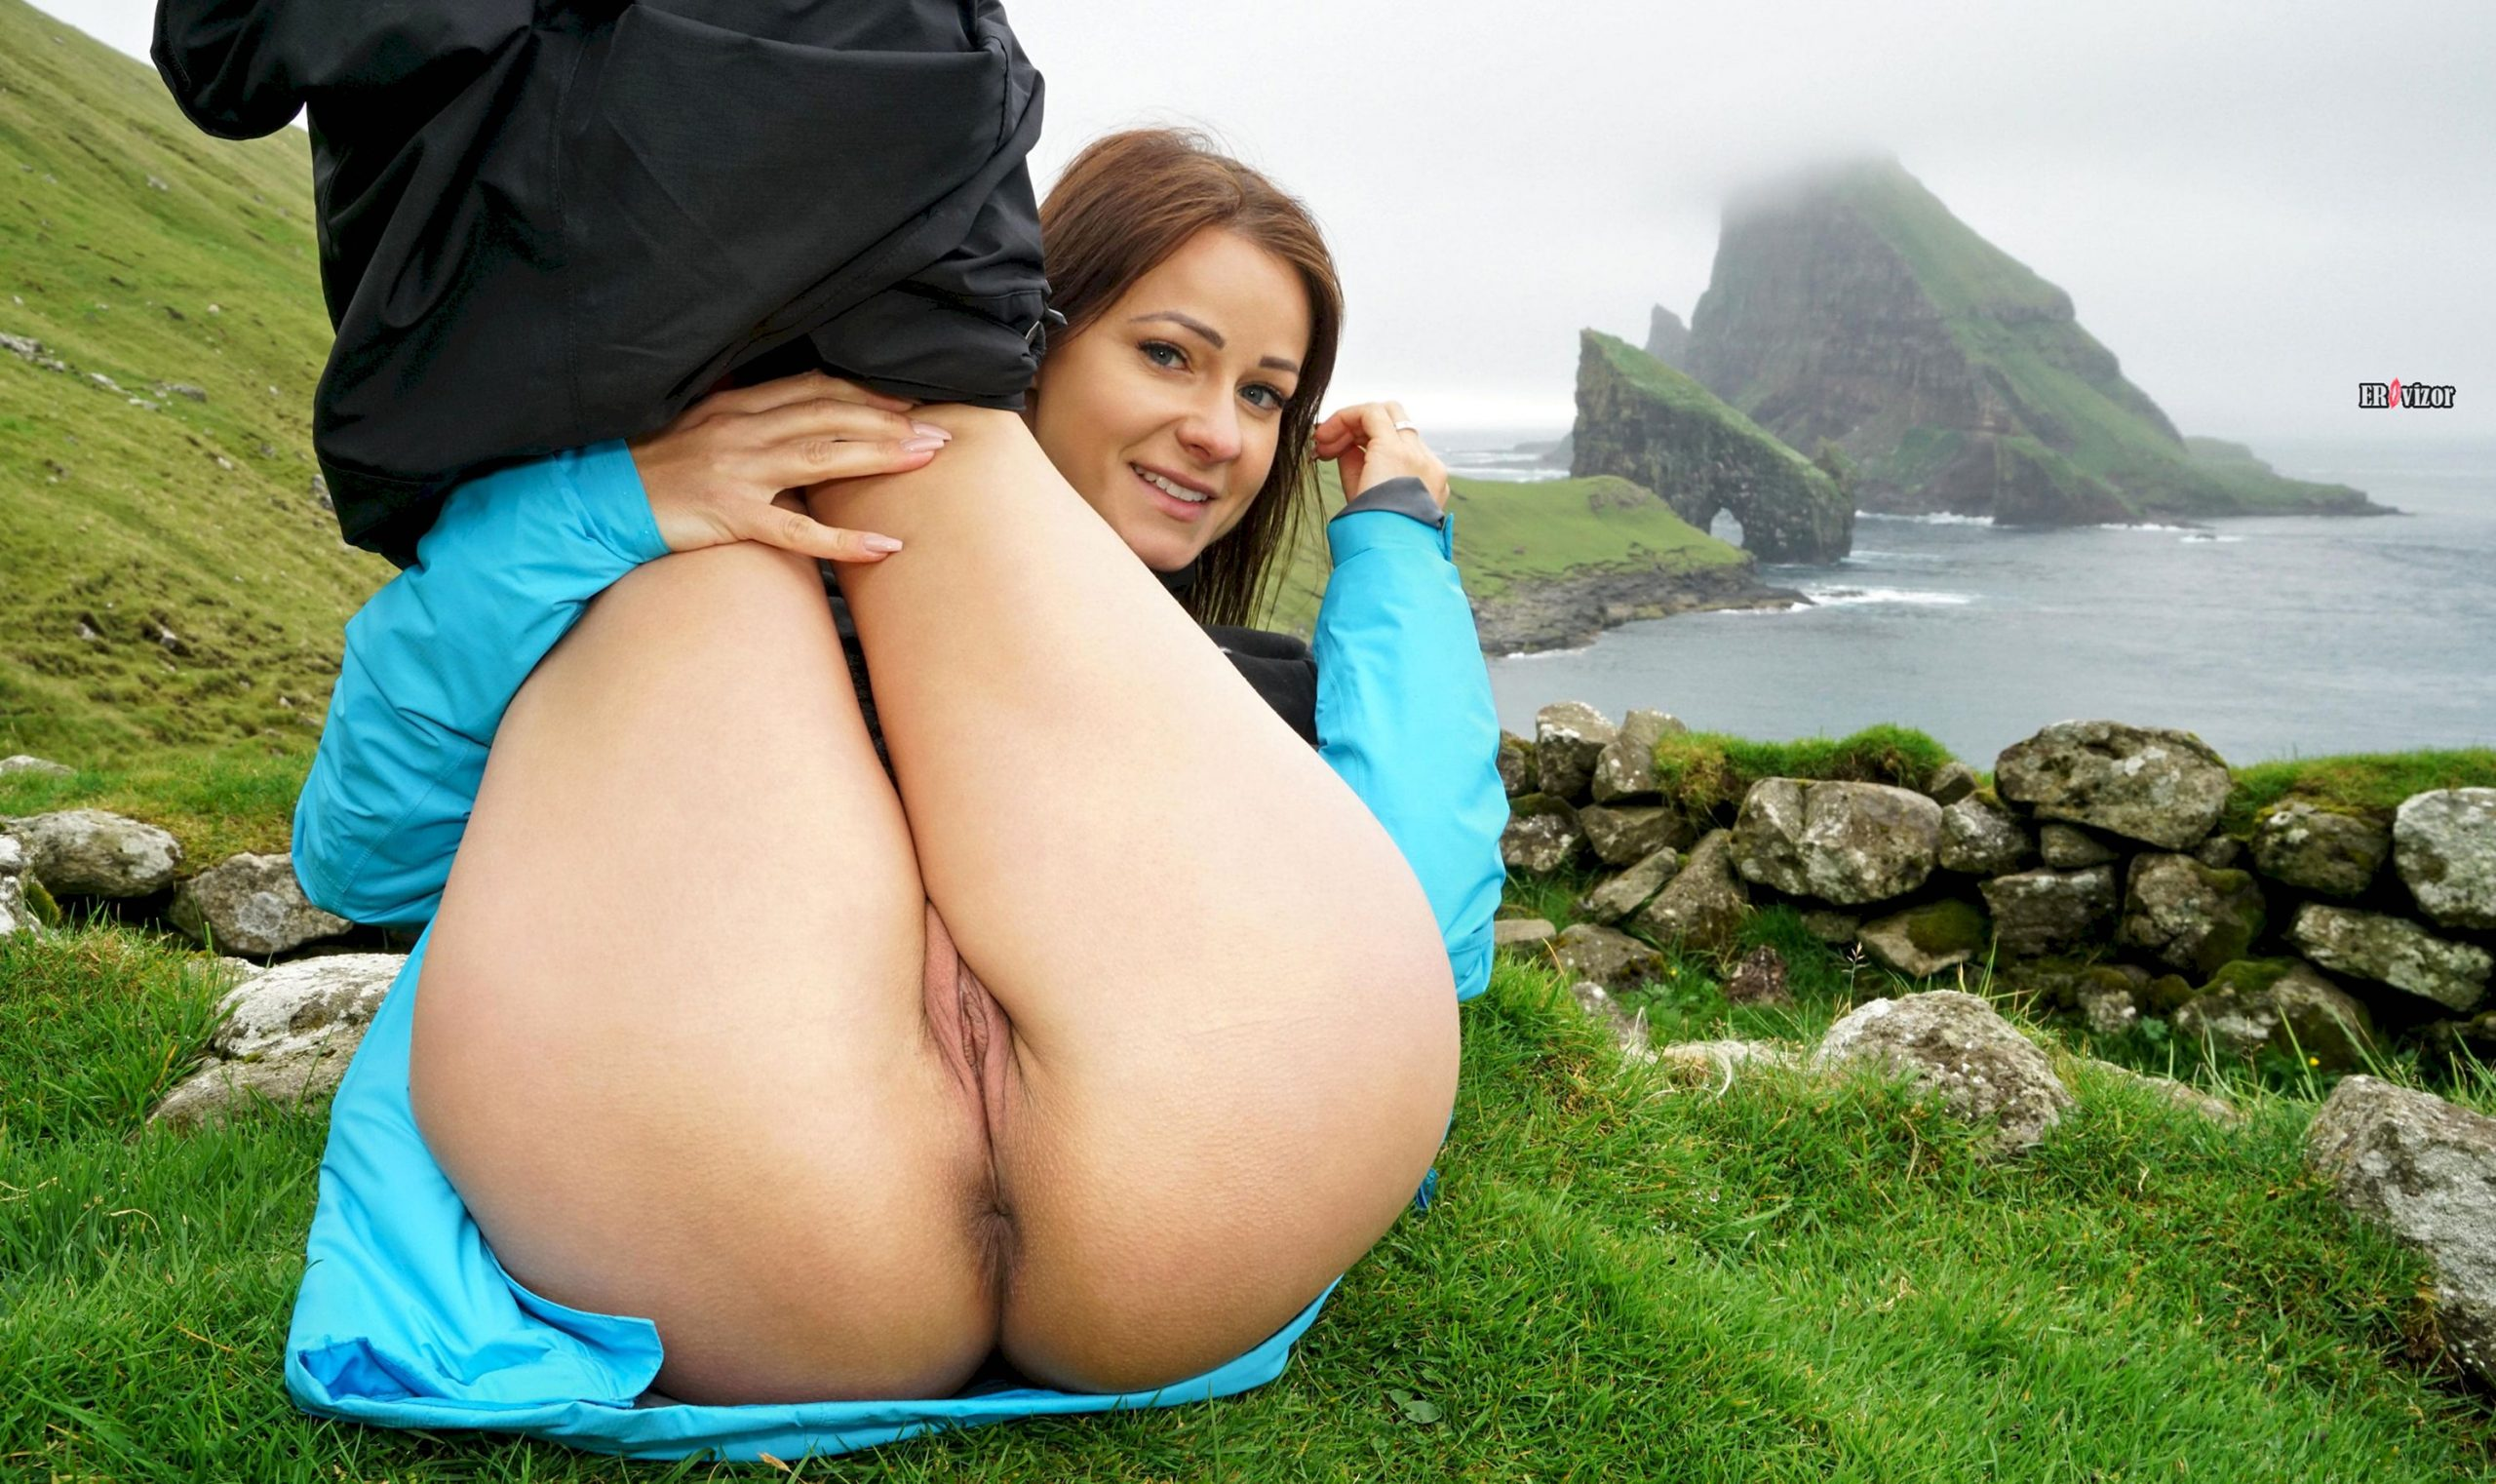 Melisa-Mendiny-with-Open-Pussy-10